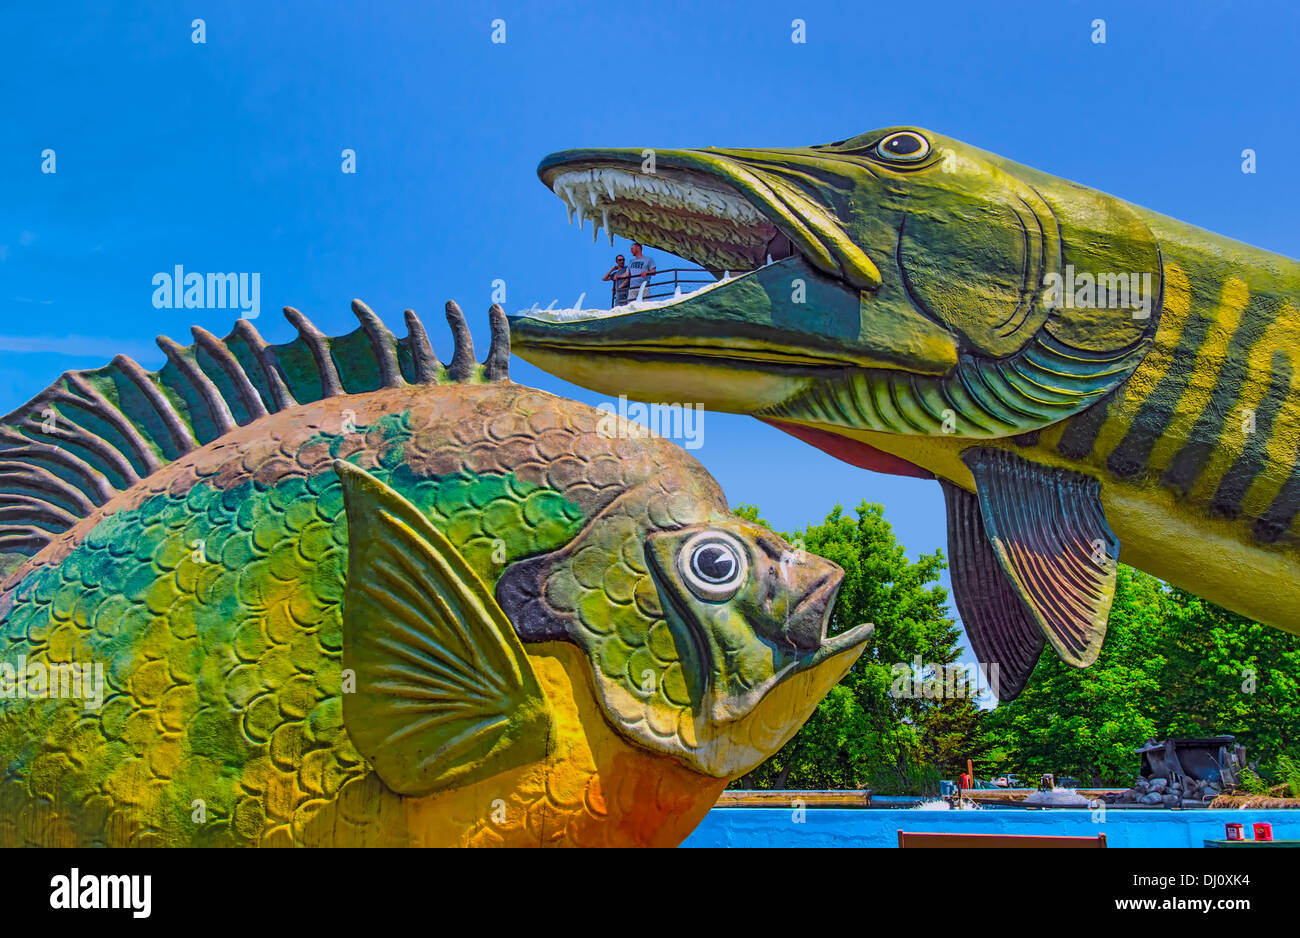 Fish sculptures at The American National Freshwater Fishing Hall of Fame at Hayward, Wisconsin, USA. Stock Photo